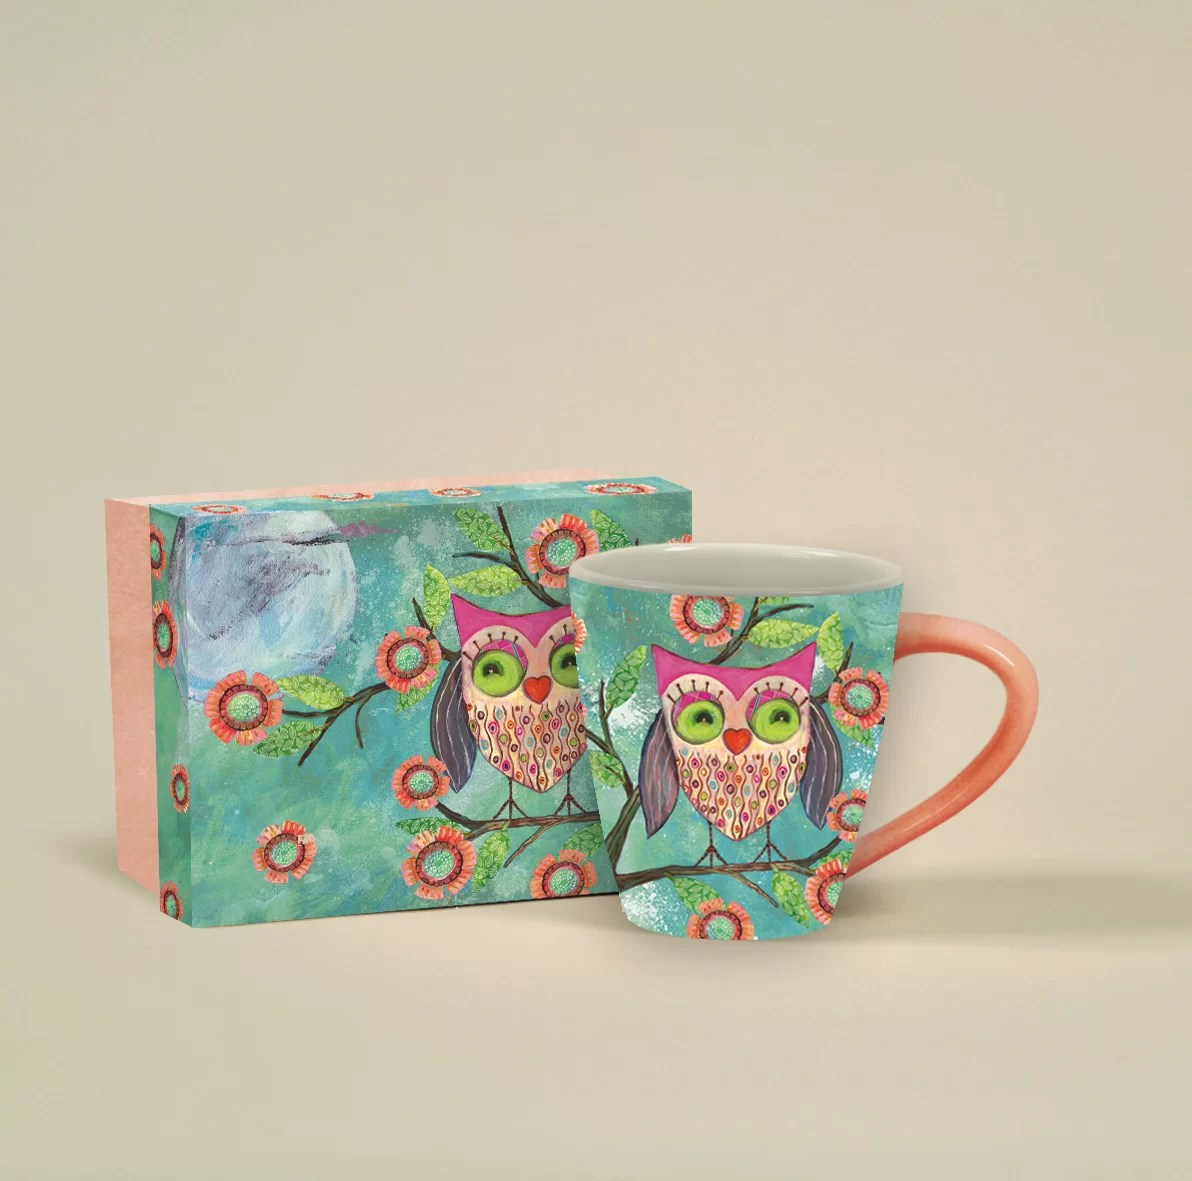 Mug A Cafe 17 Oz Happy Owl Café Mug